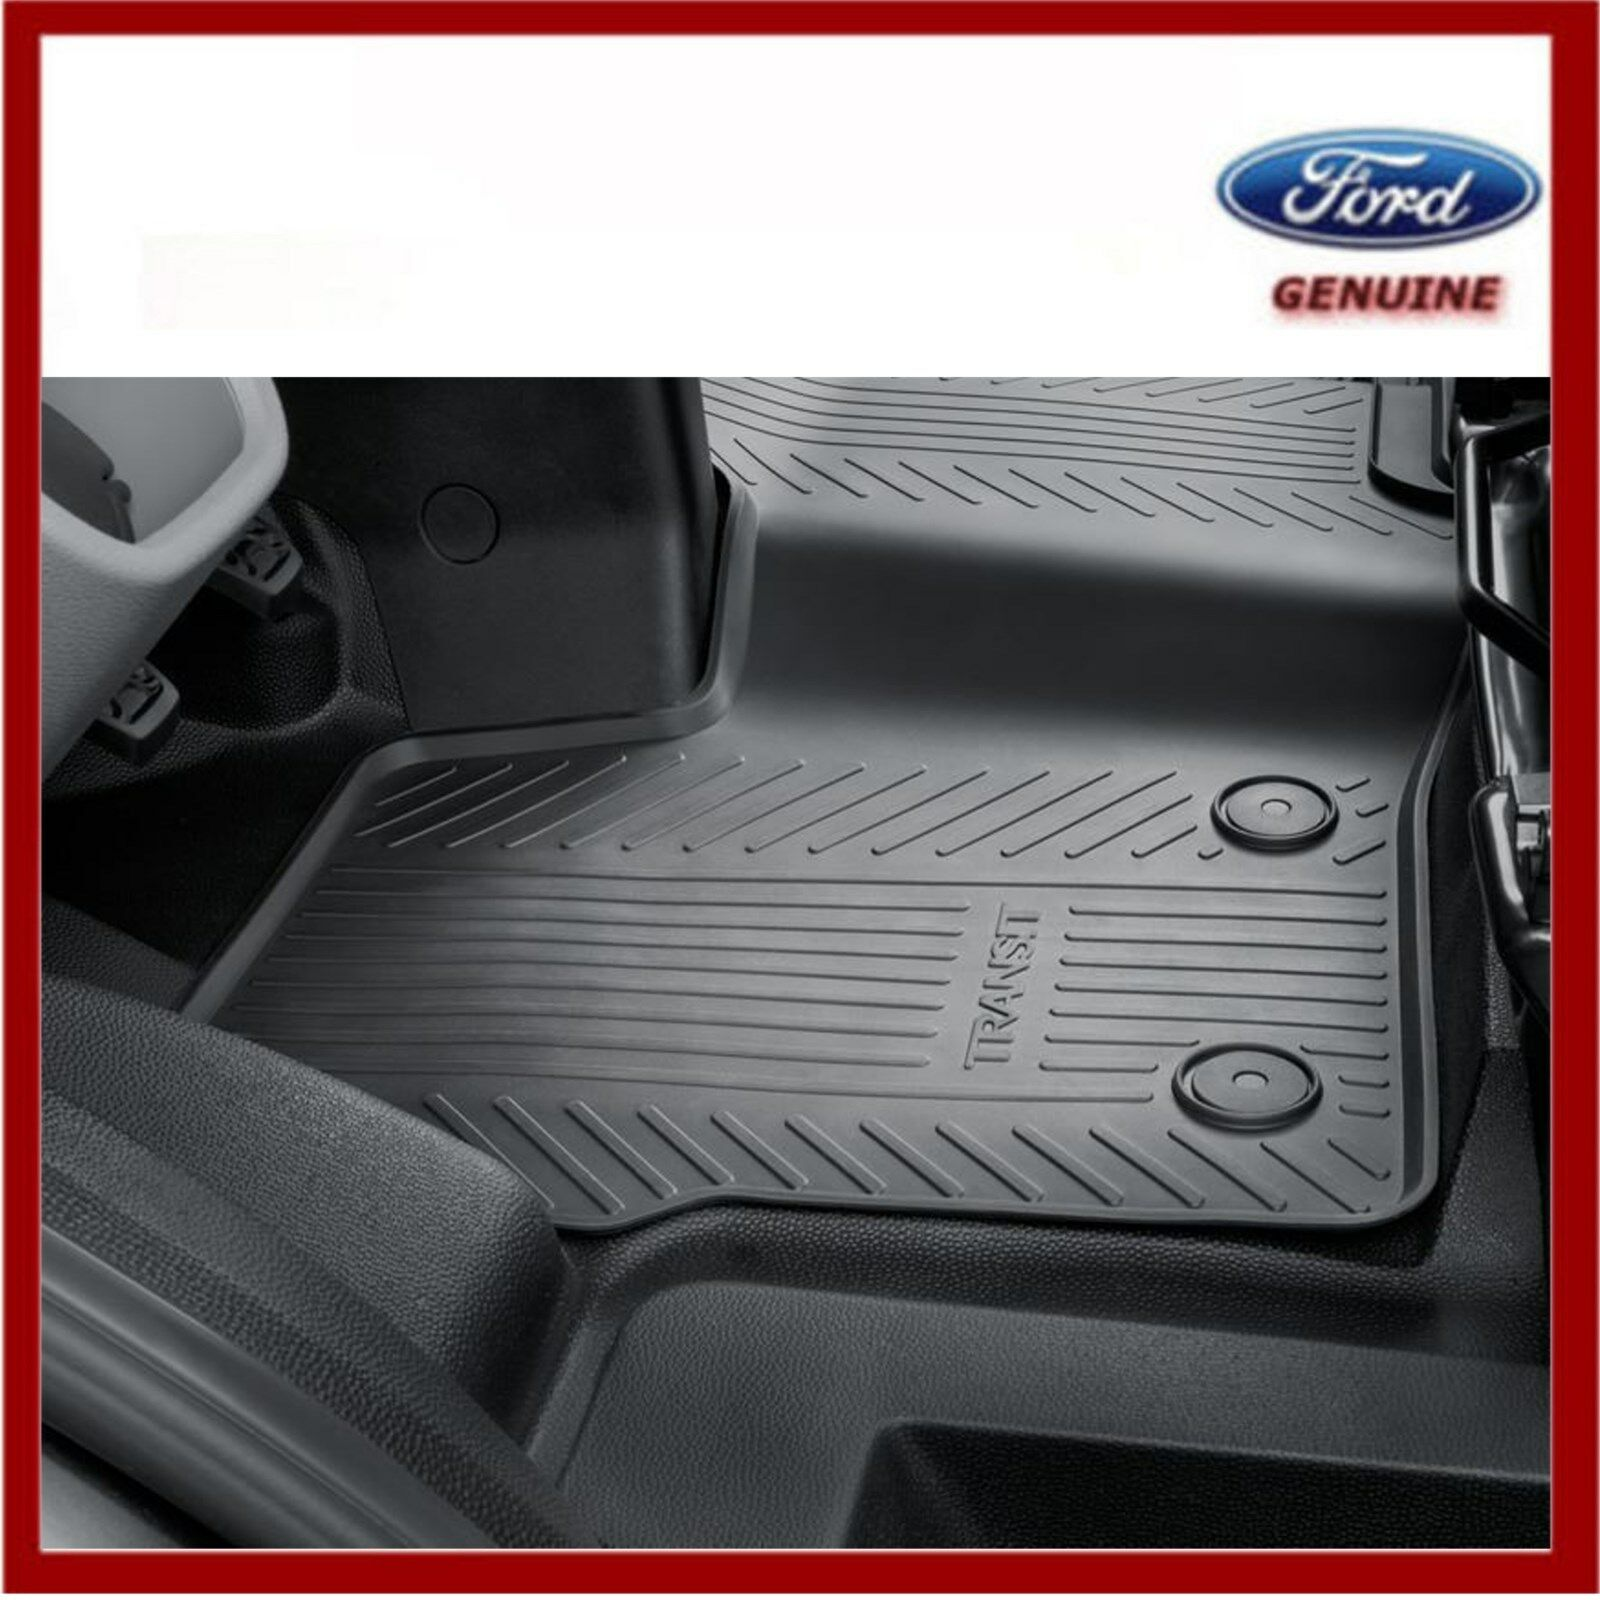 Car Parts - Genuine Ford Transit Custom 2012 Onwards Front Rubber Floor Mats. New! 2047030